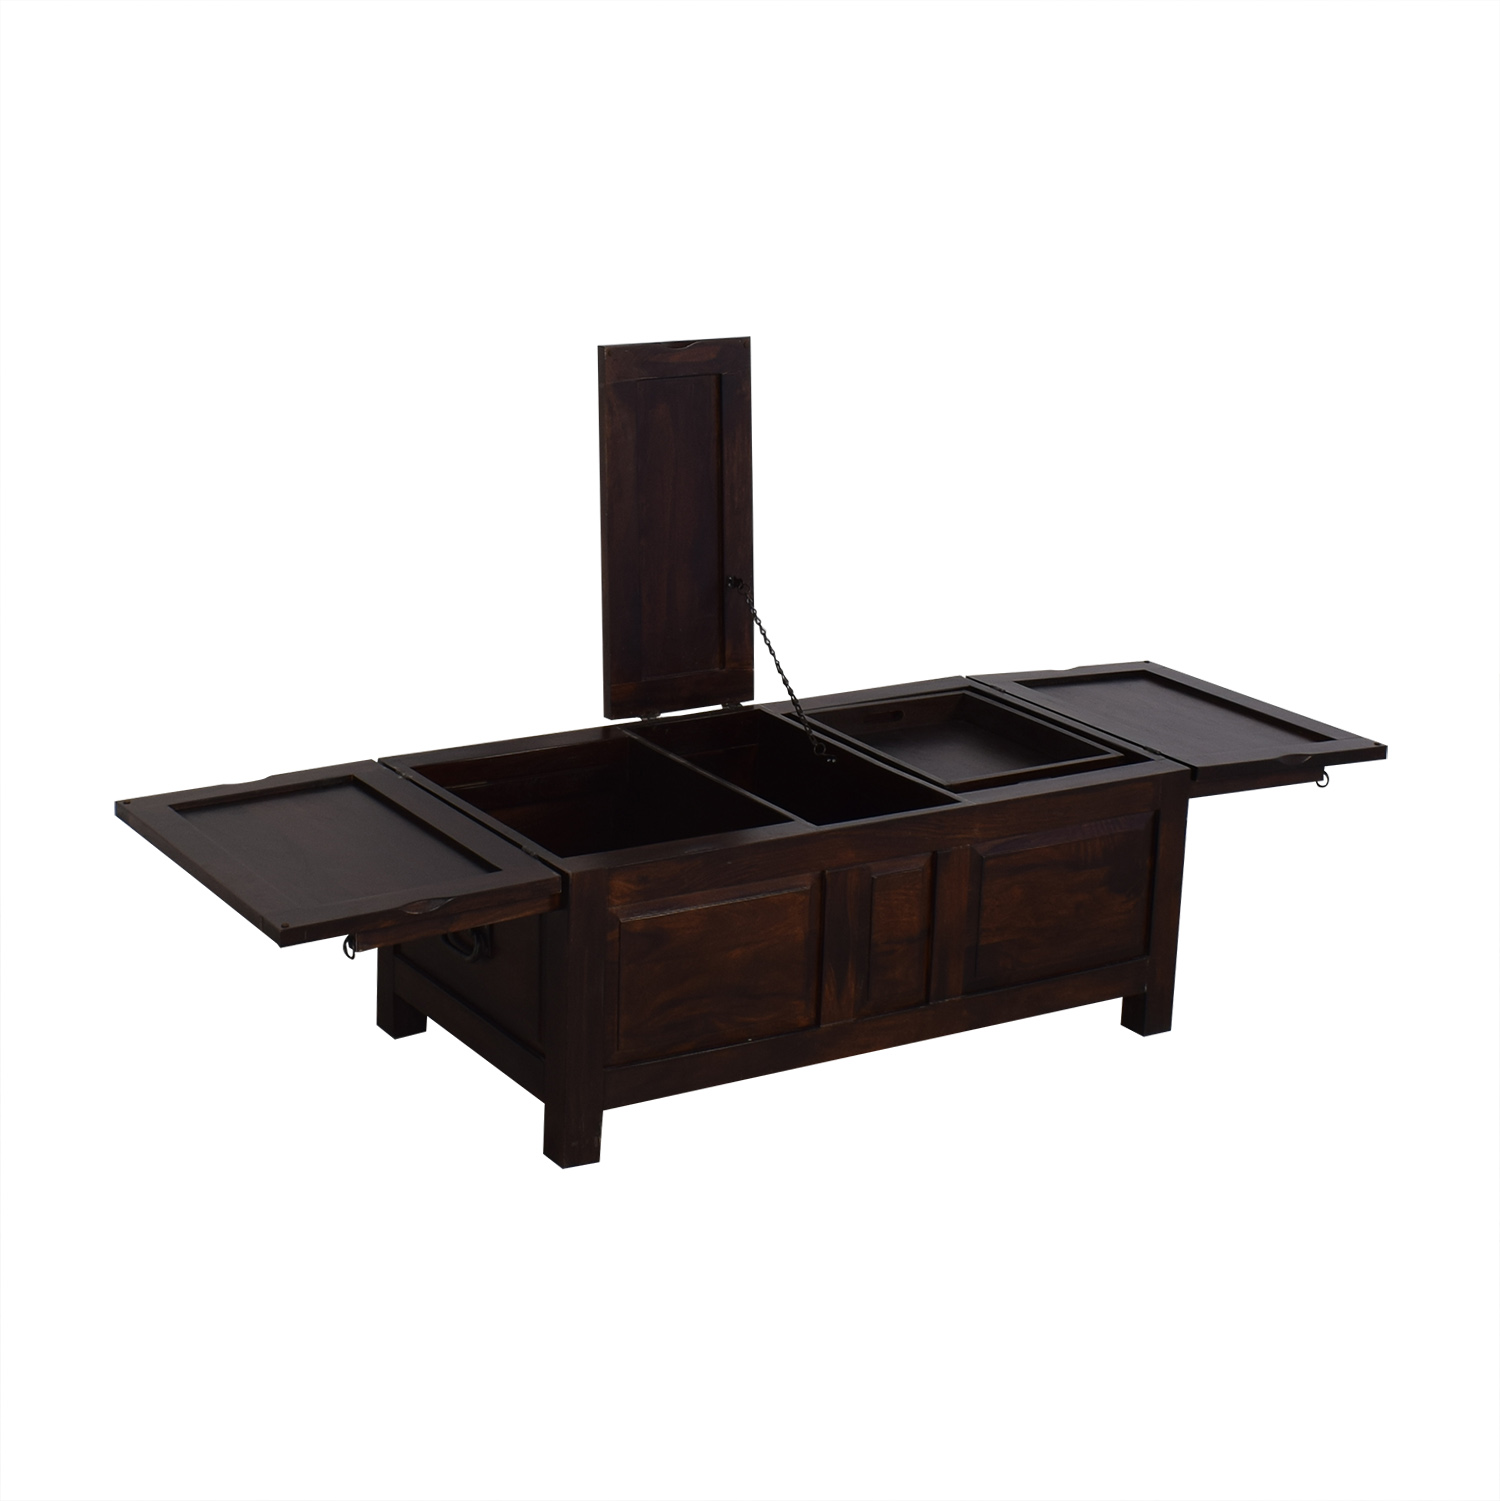 Crate and Barrel Trunk Table / Trunks